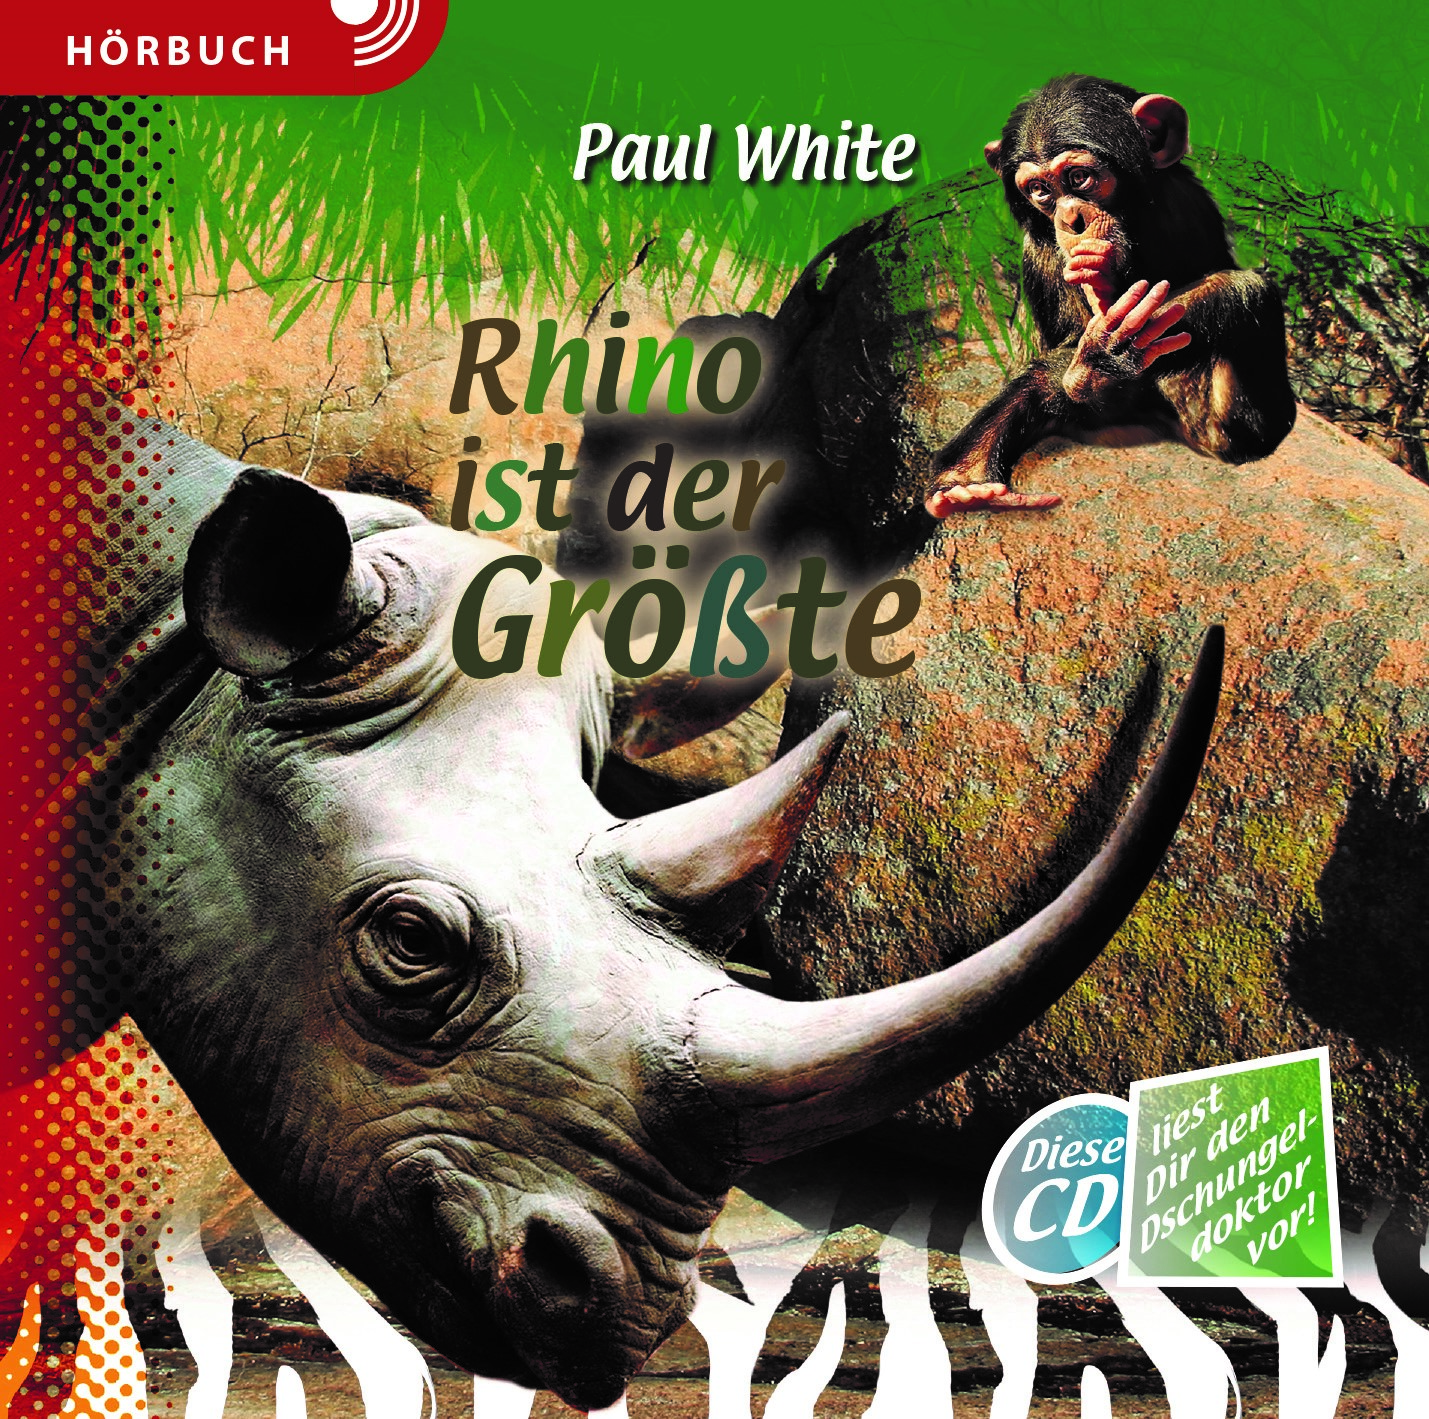 clv_rhino-ist-der-groesste-mp3_paul-white_256984_1